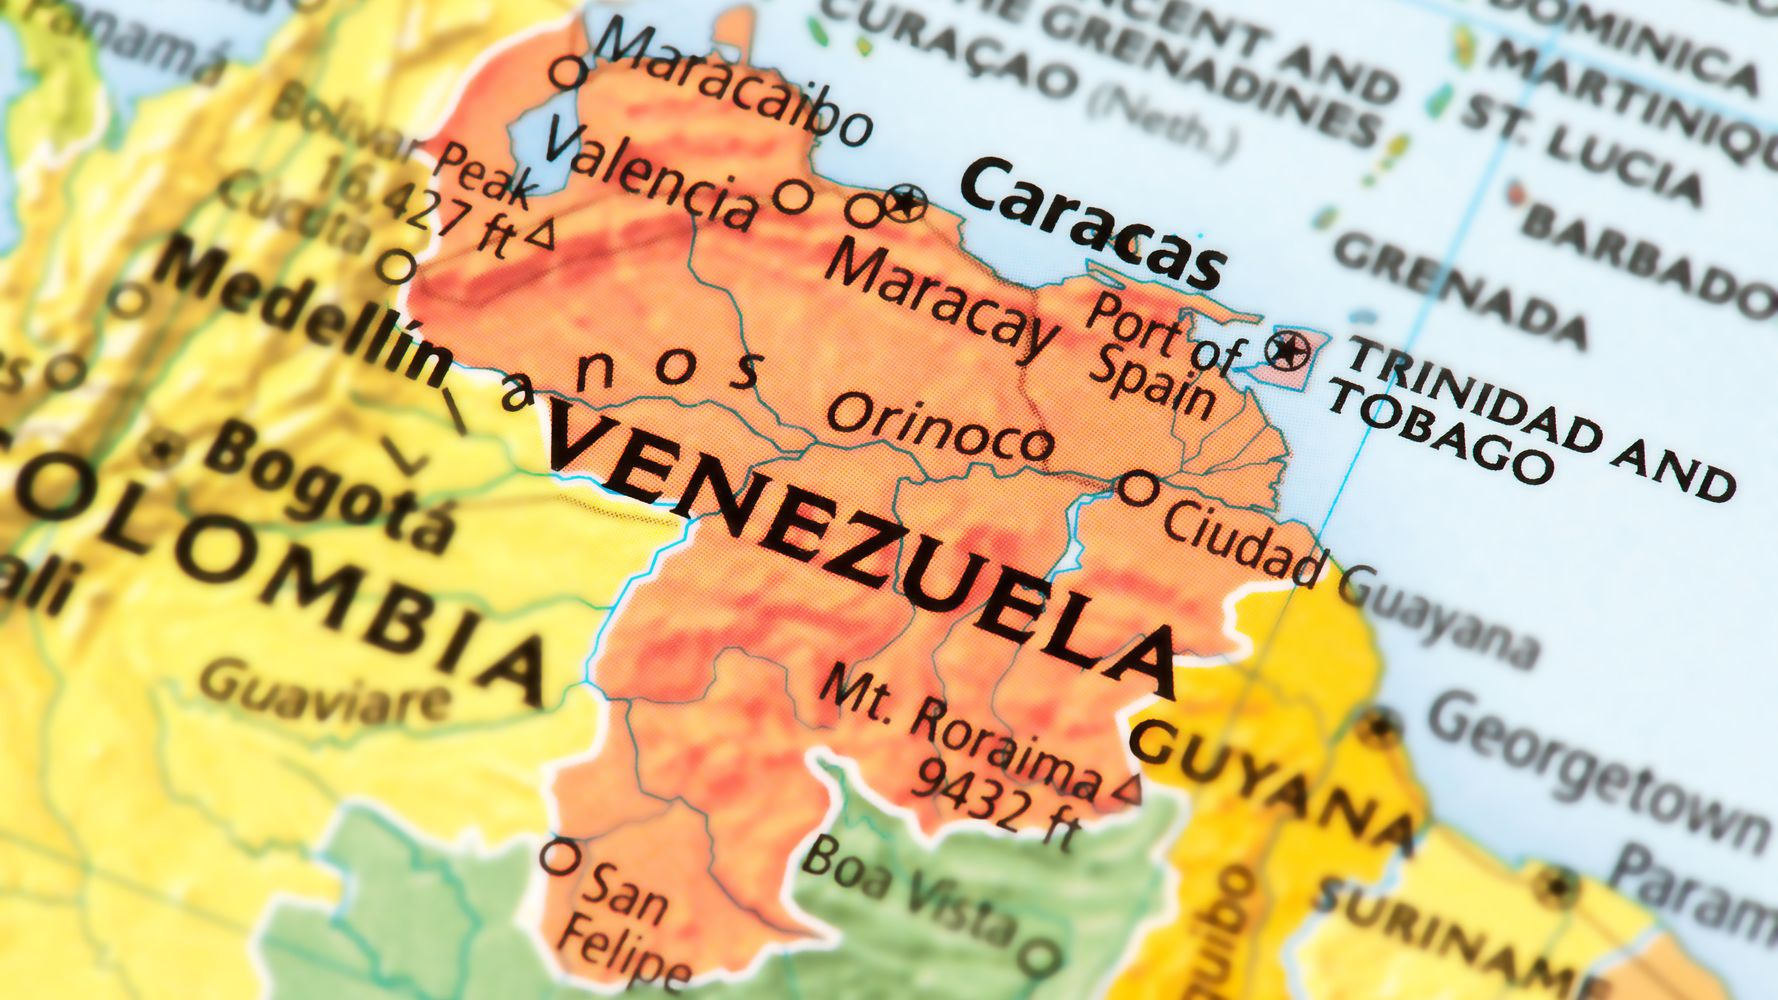 Invading Venezuela Is A Terrible Idea | HuffPost